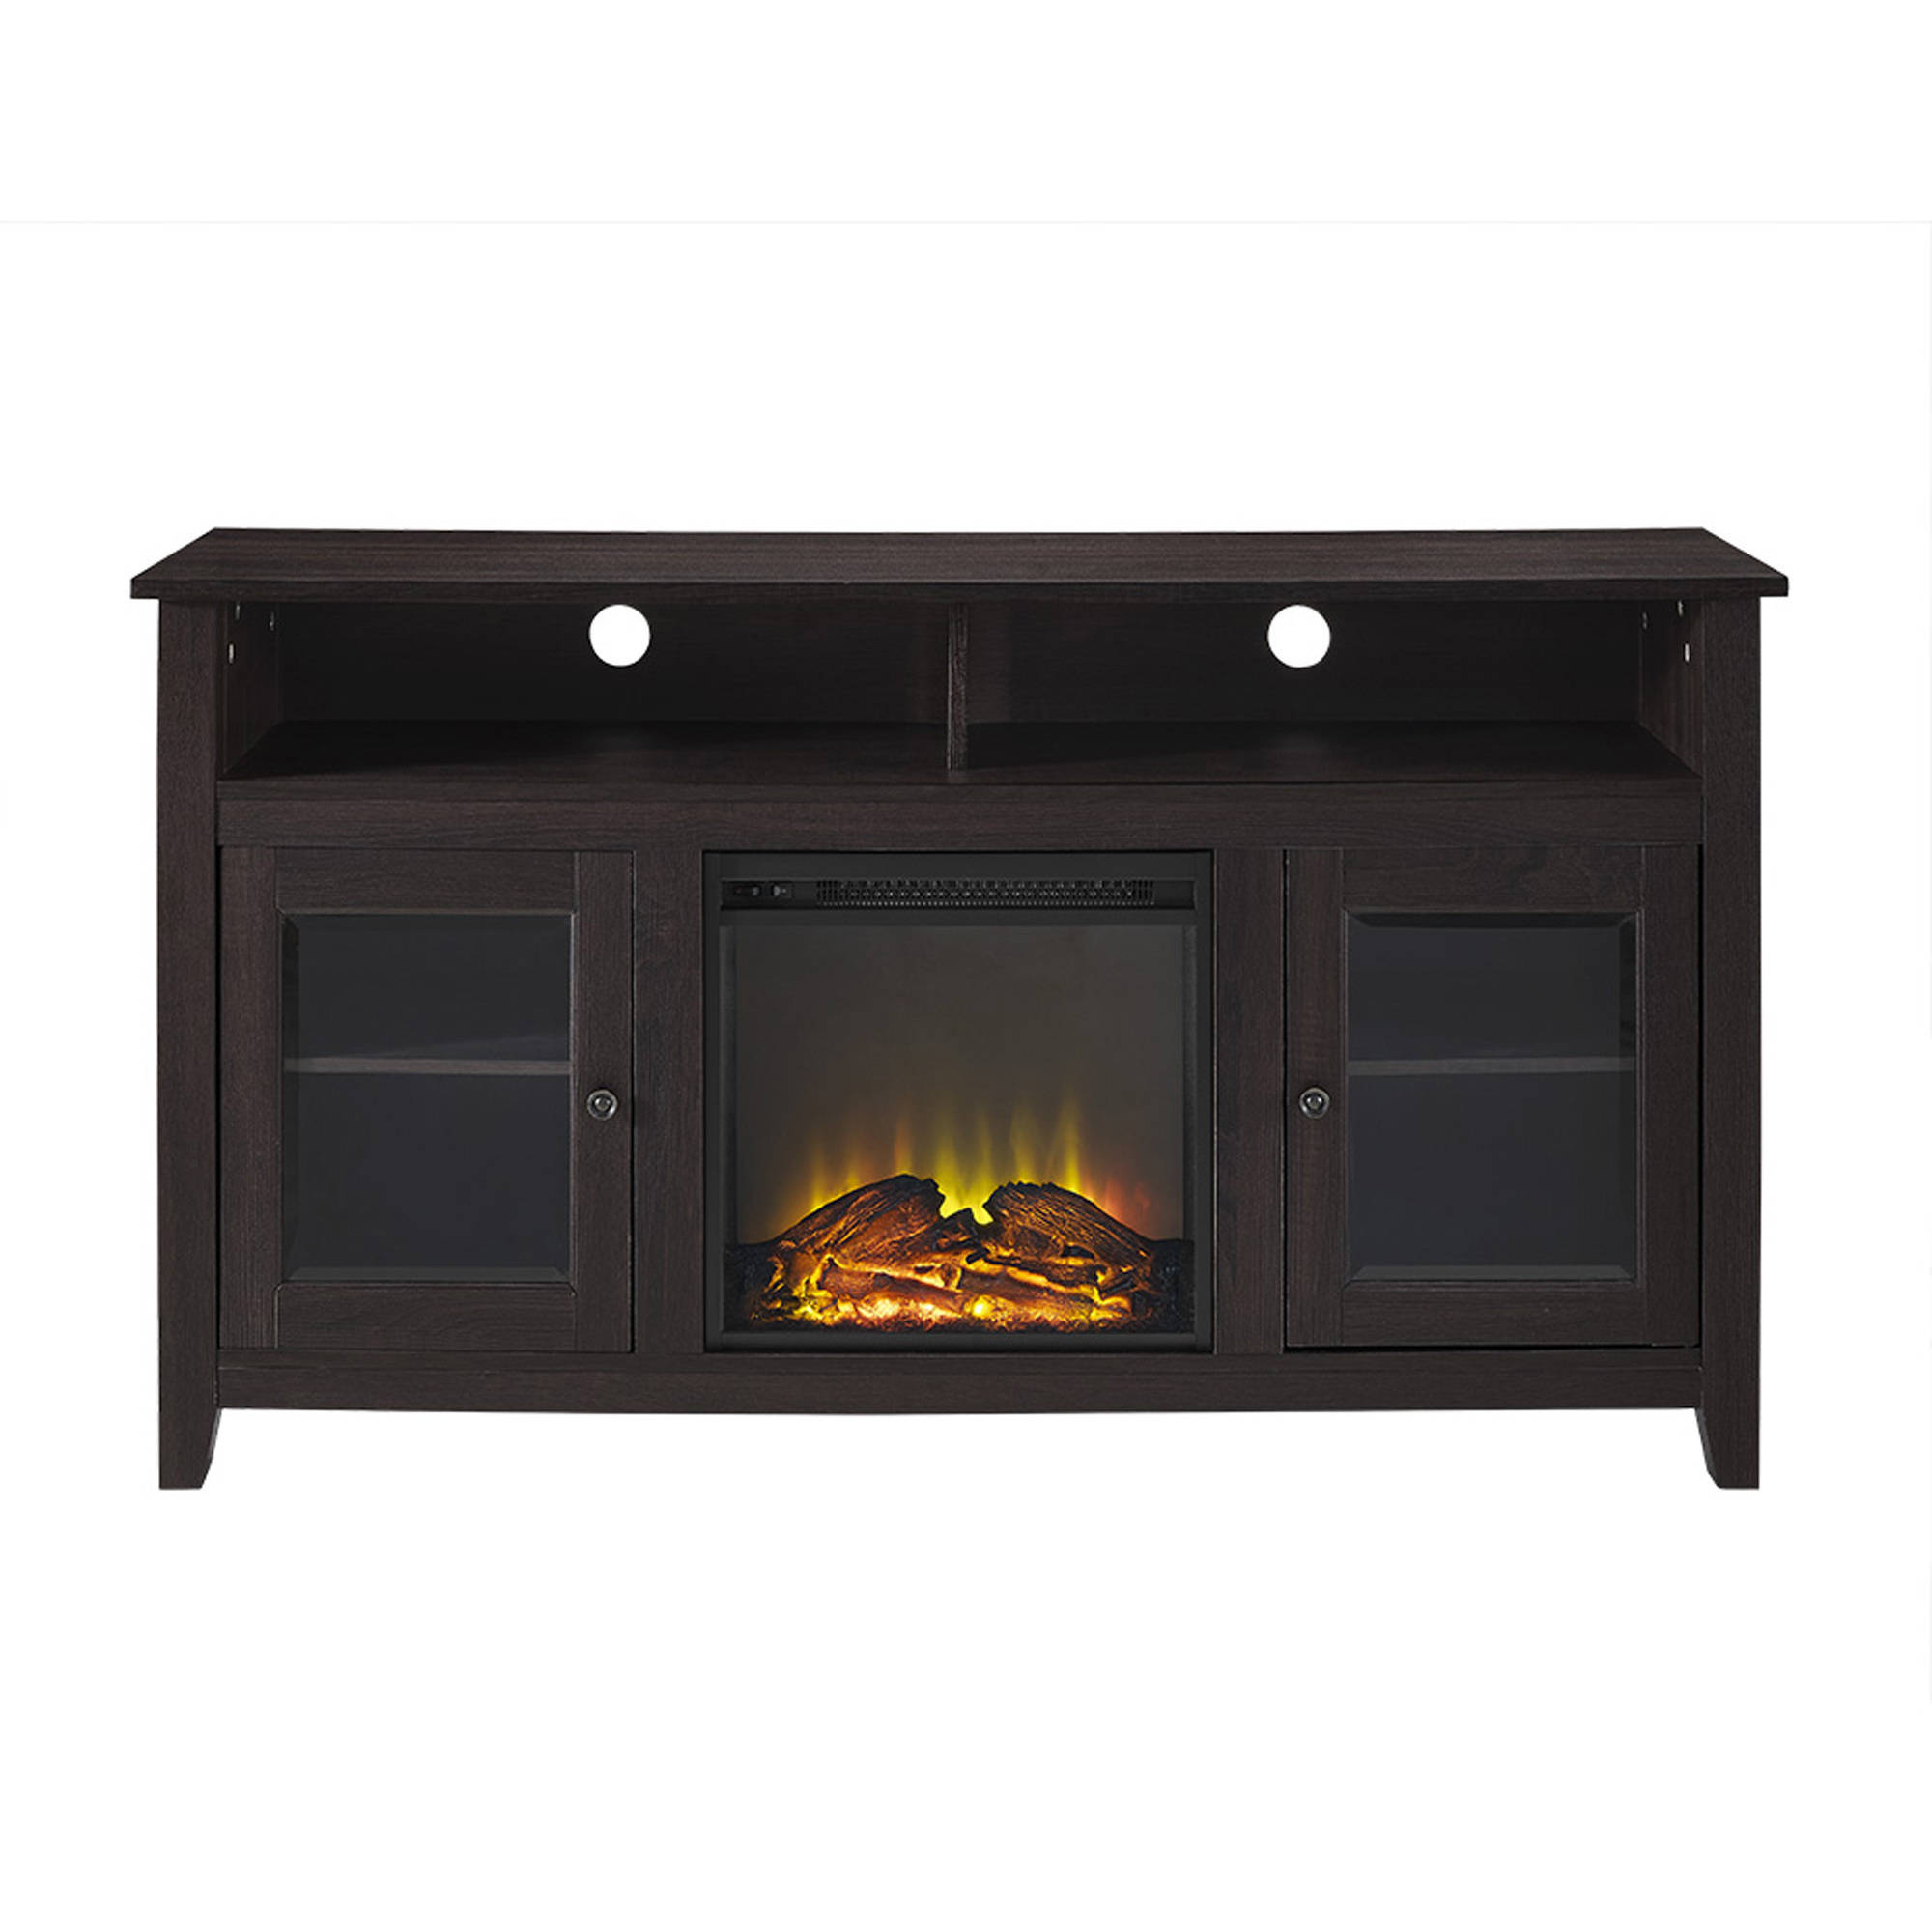 """Famous 58"""" Wood Highboy Fireplace Tv Stand For Tvs Up To 60 In Evanston Tv Stands For Tvs Up To 60"""" (View 11 of 20)"""